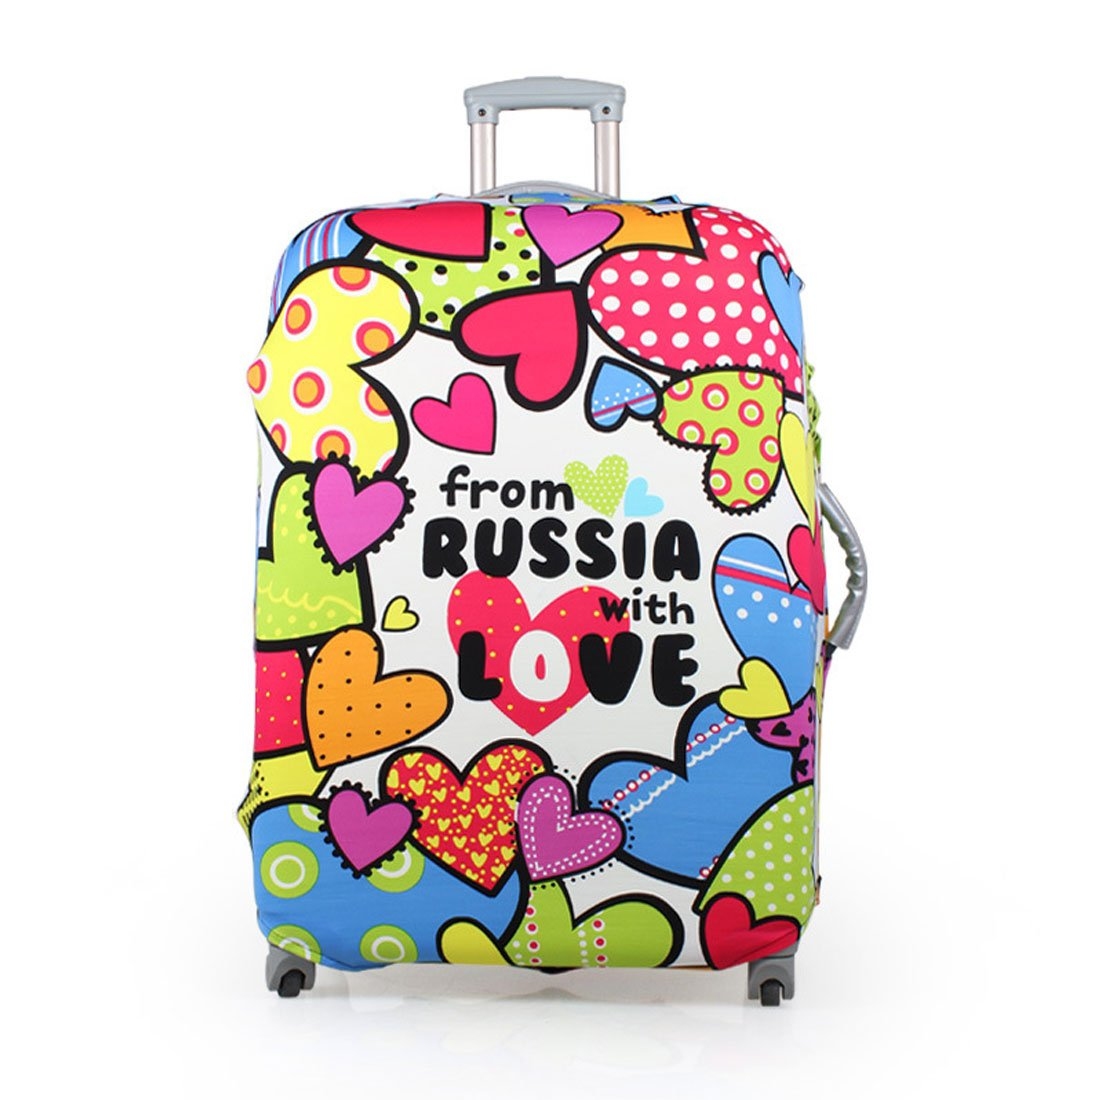 Washable Elastic Luggage Protective Covers Fits 20/24/28 Inch Suitcase Baggage Cover (L(26-28''), From Russia with love)